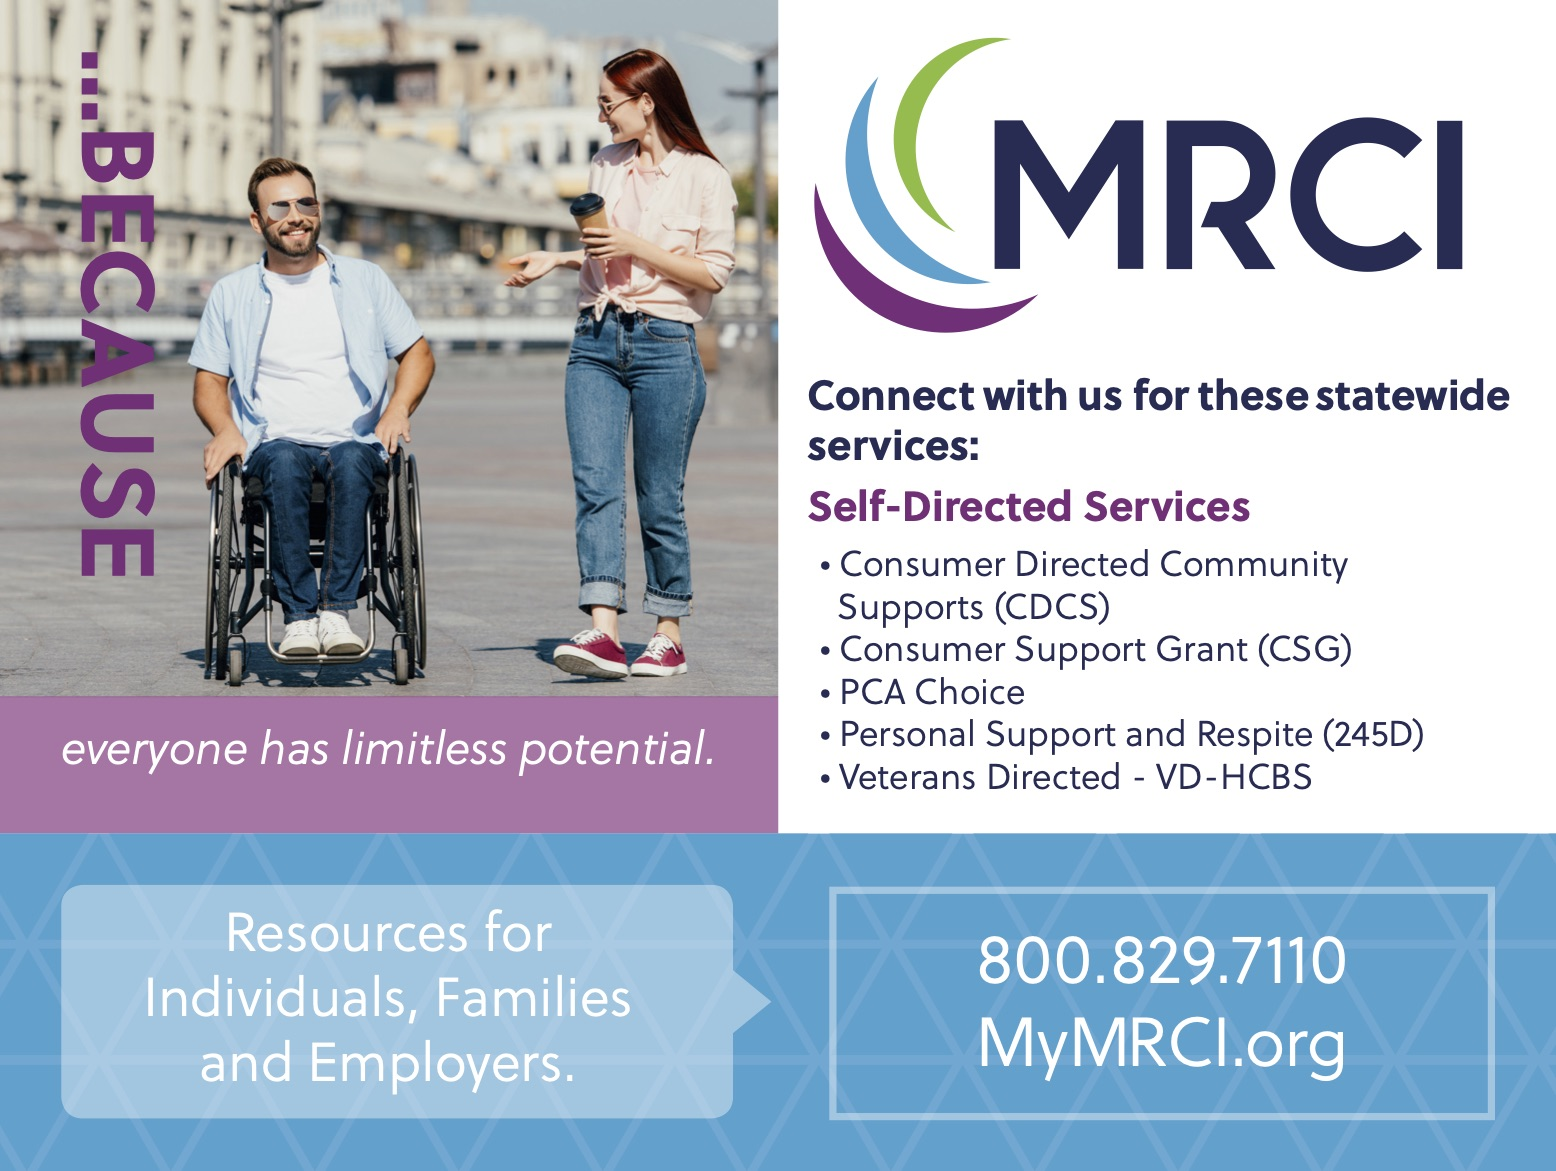 mrci ad for july